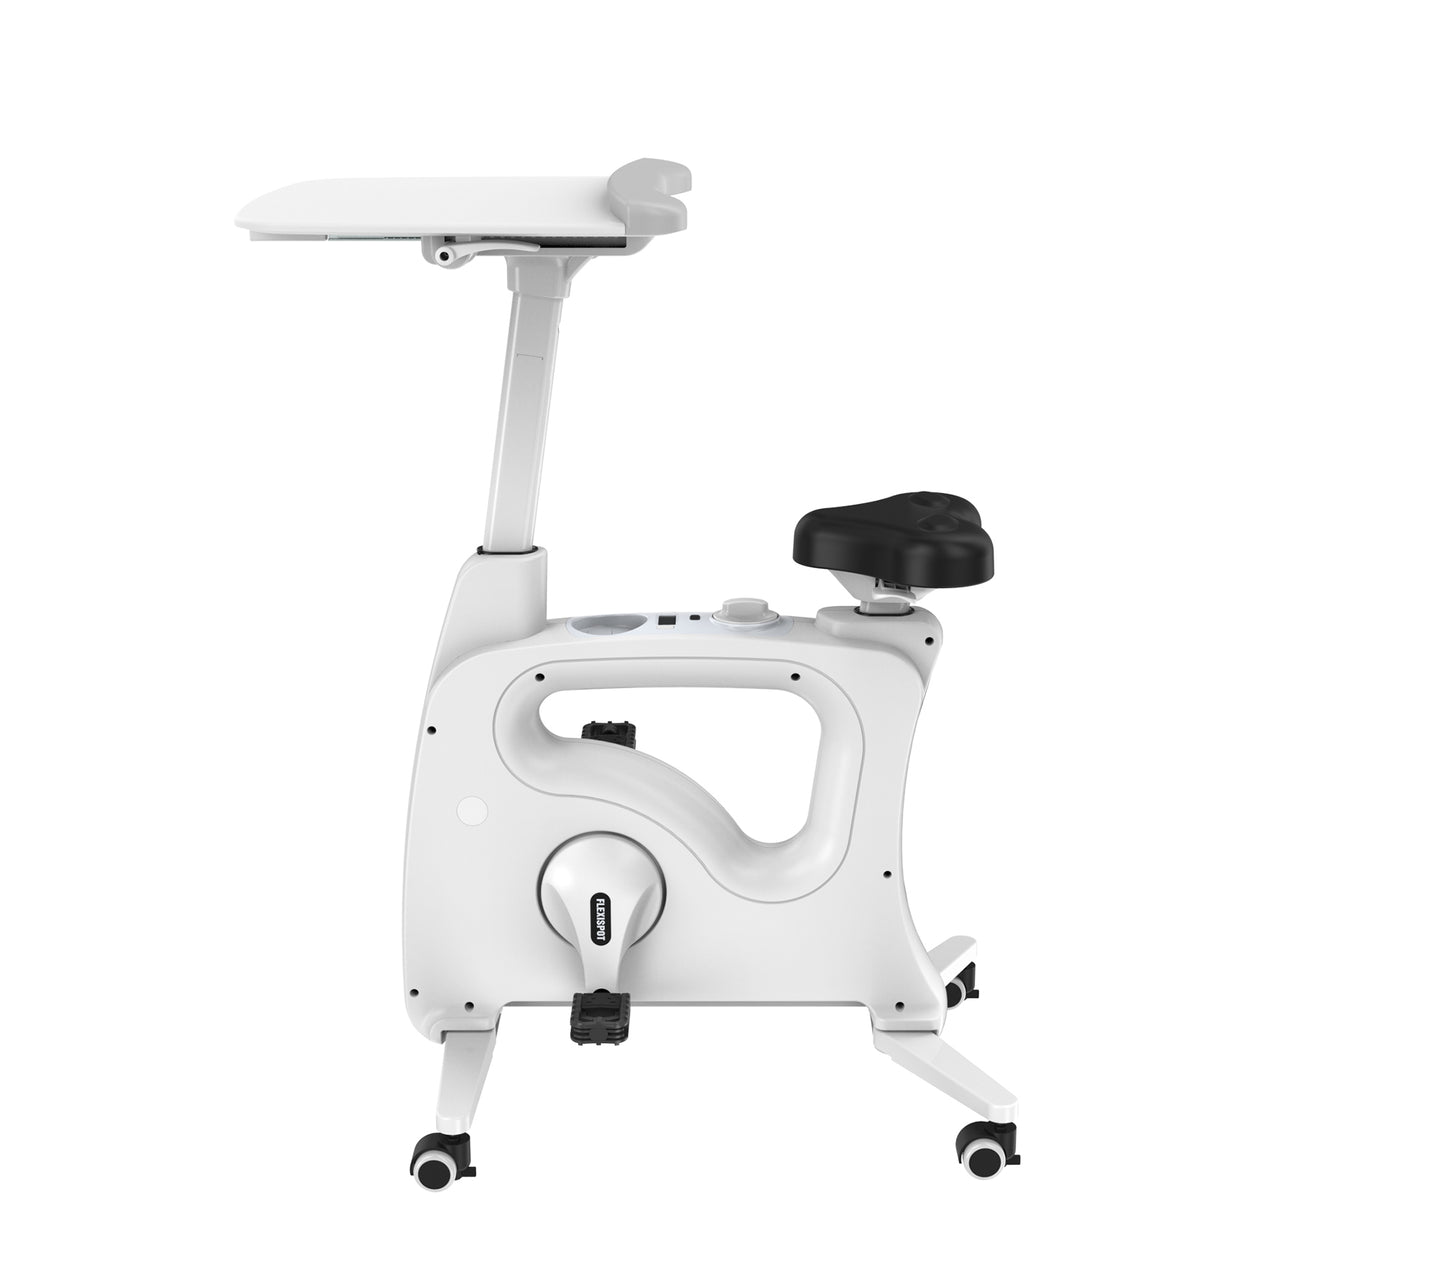 Home Office Height Adjustable Cycle Desk Bike V9/V9B by Flexispot white version